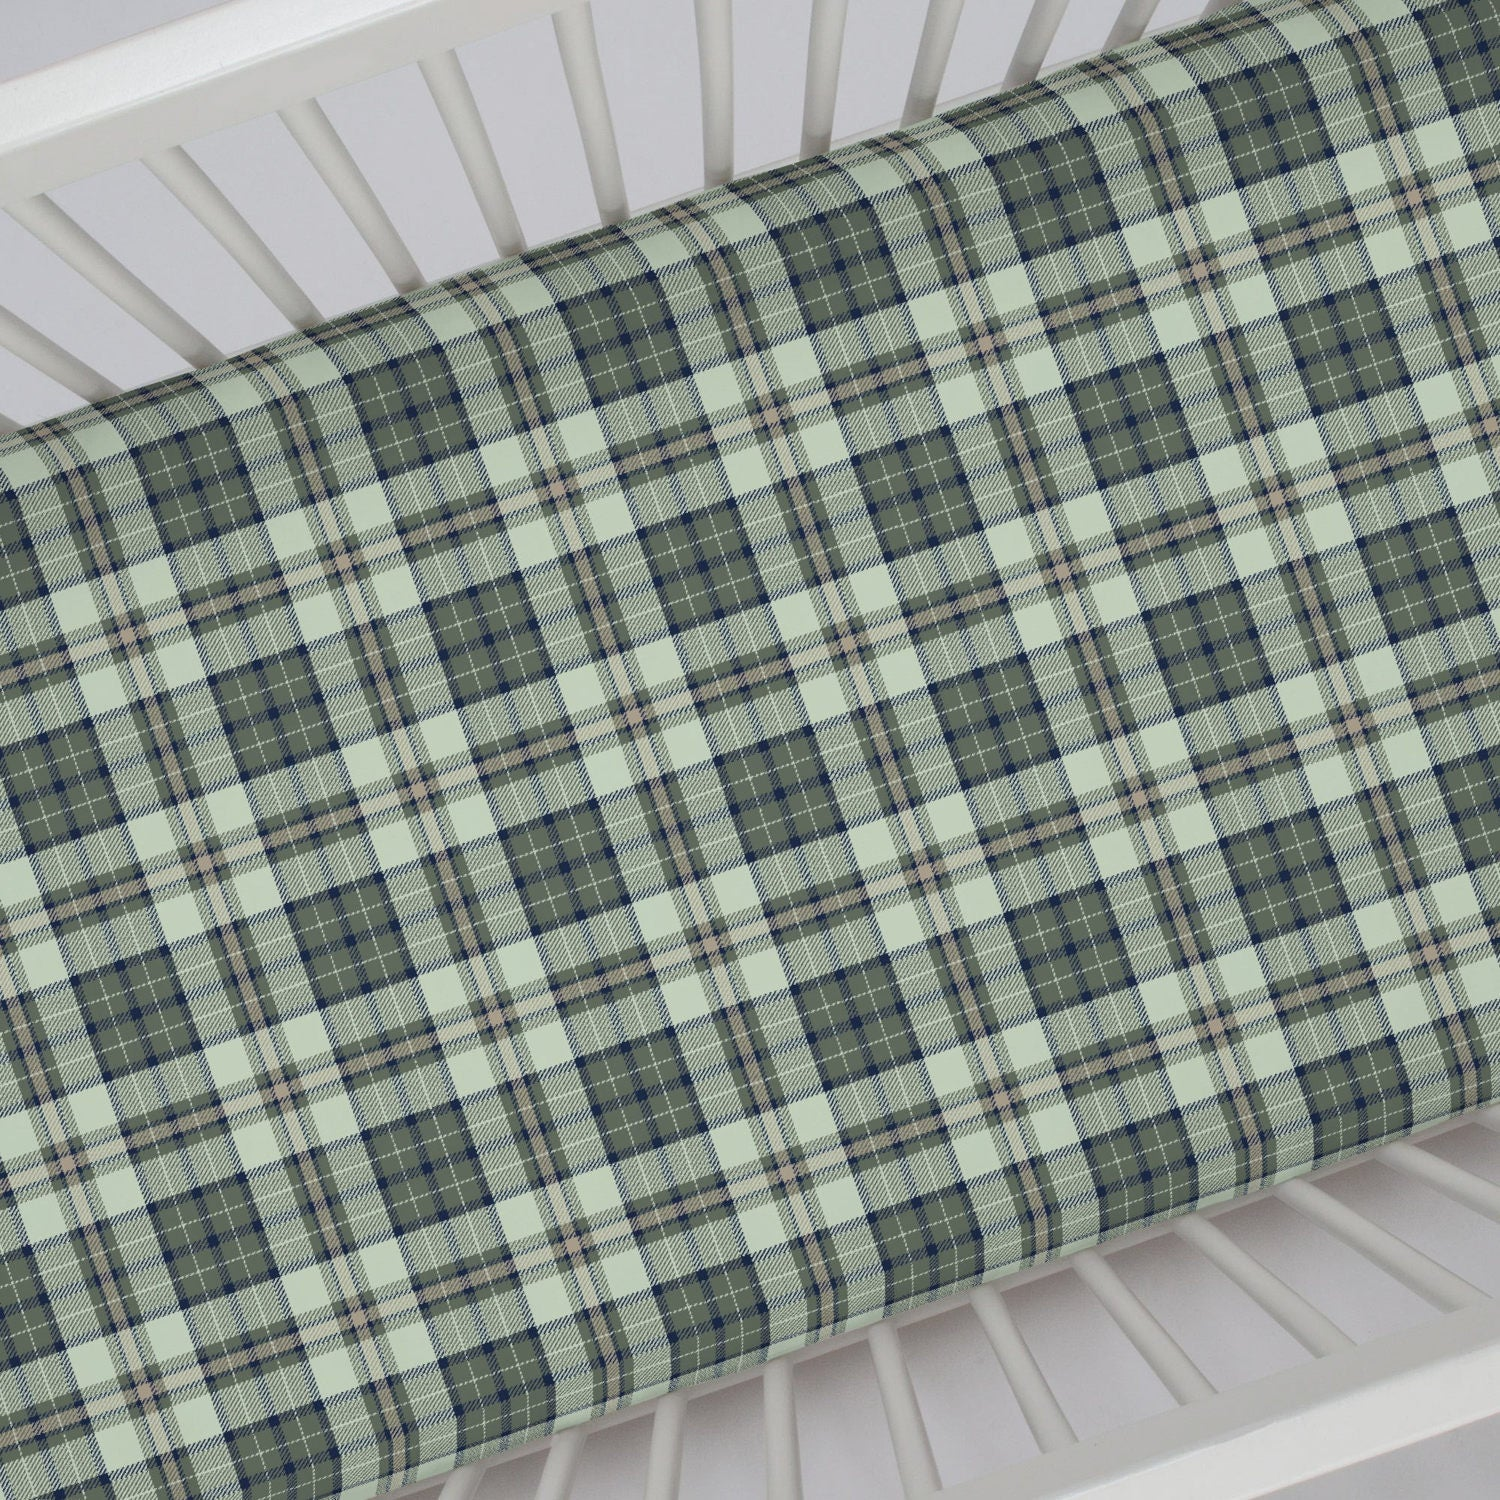 pine rustic grey cribs in creek decor plaid pin nursery a bedding and with crib by navy